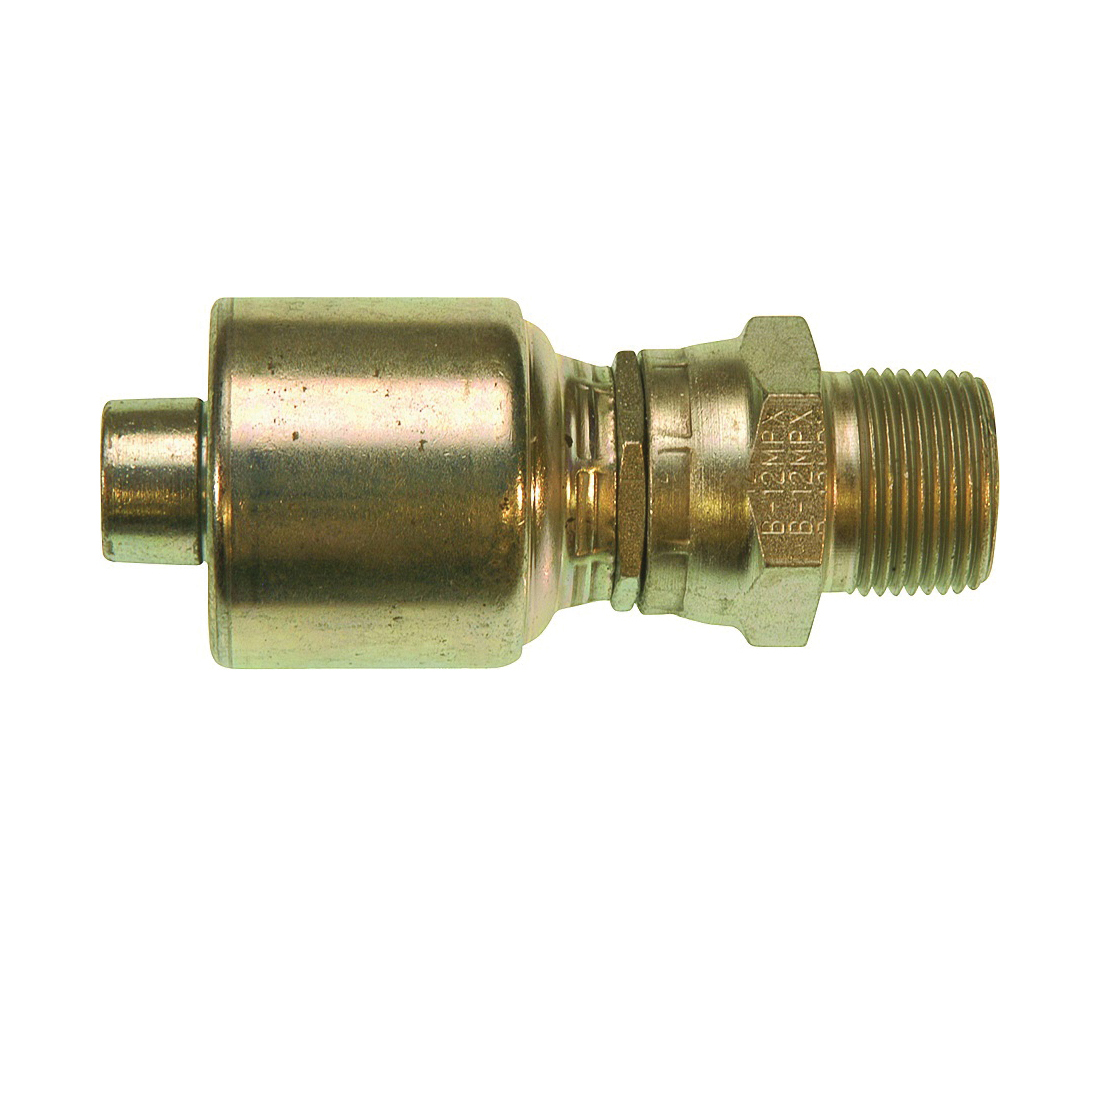 Picture of GATES MegaCrimp G25105-0604 Hose Coupling, 1/4-18, Crimp x NPTF, Straight Angle, Steel, Zinc